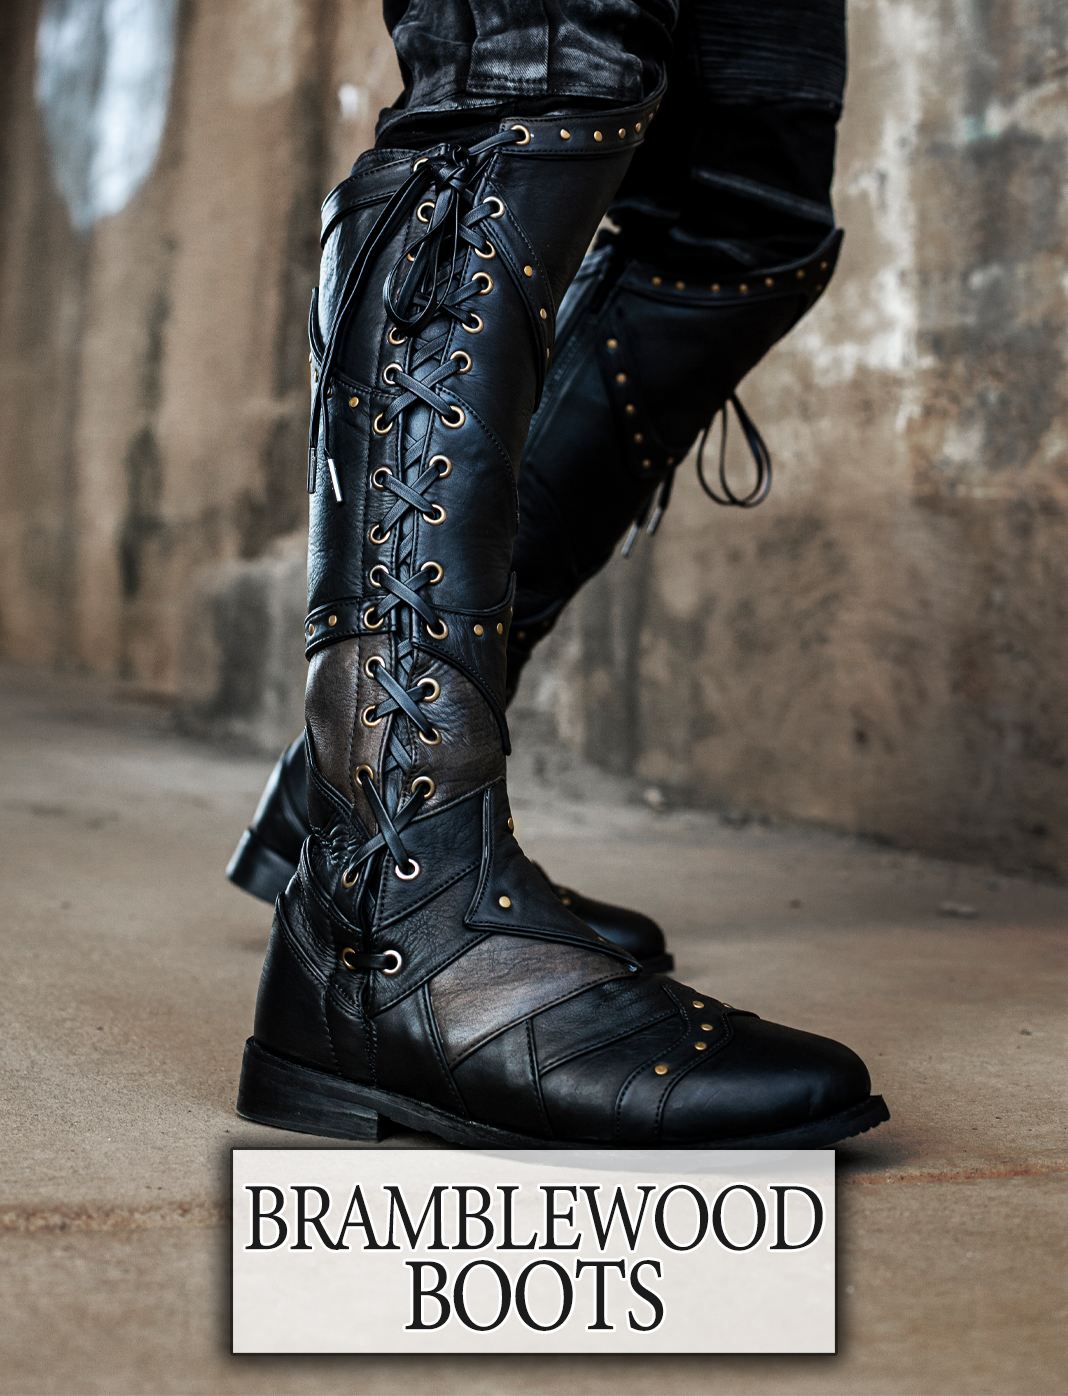 2020-bramblewood-boots-mobile-banner.png